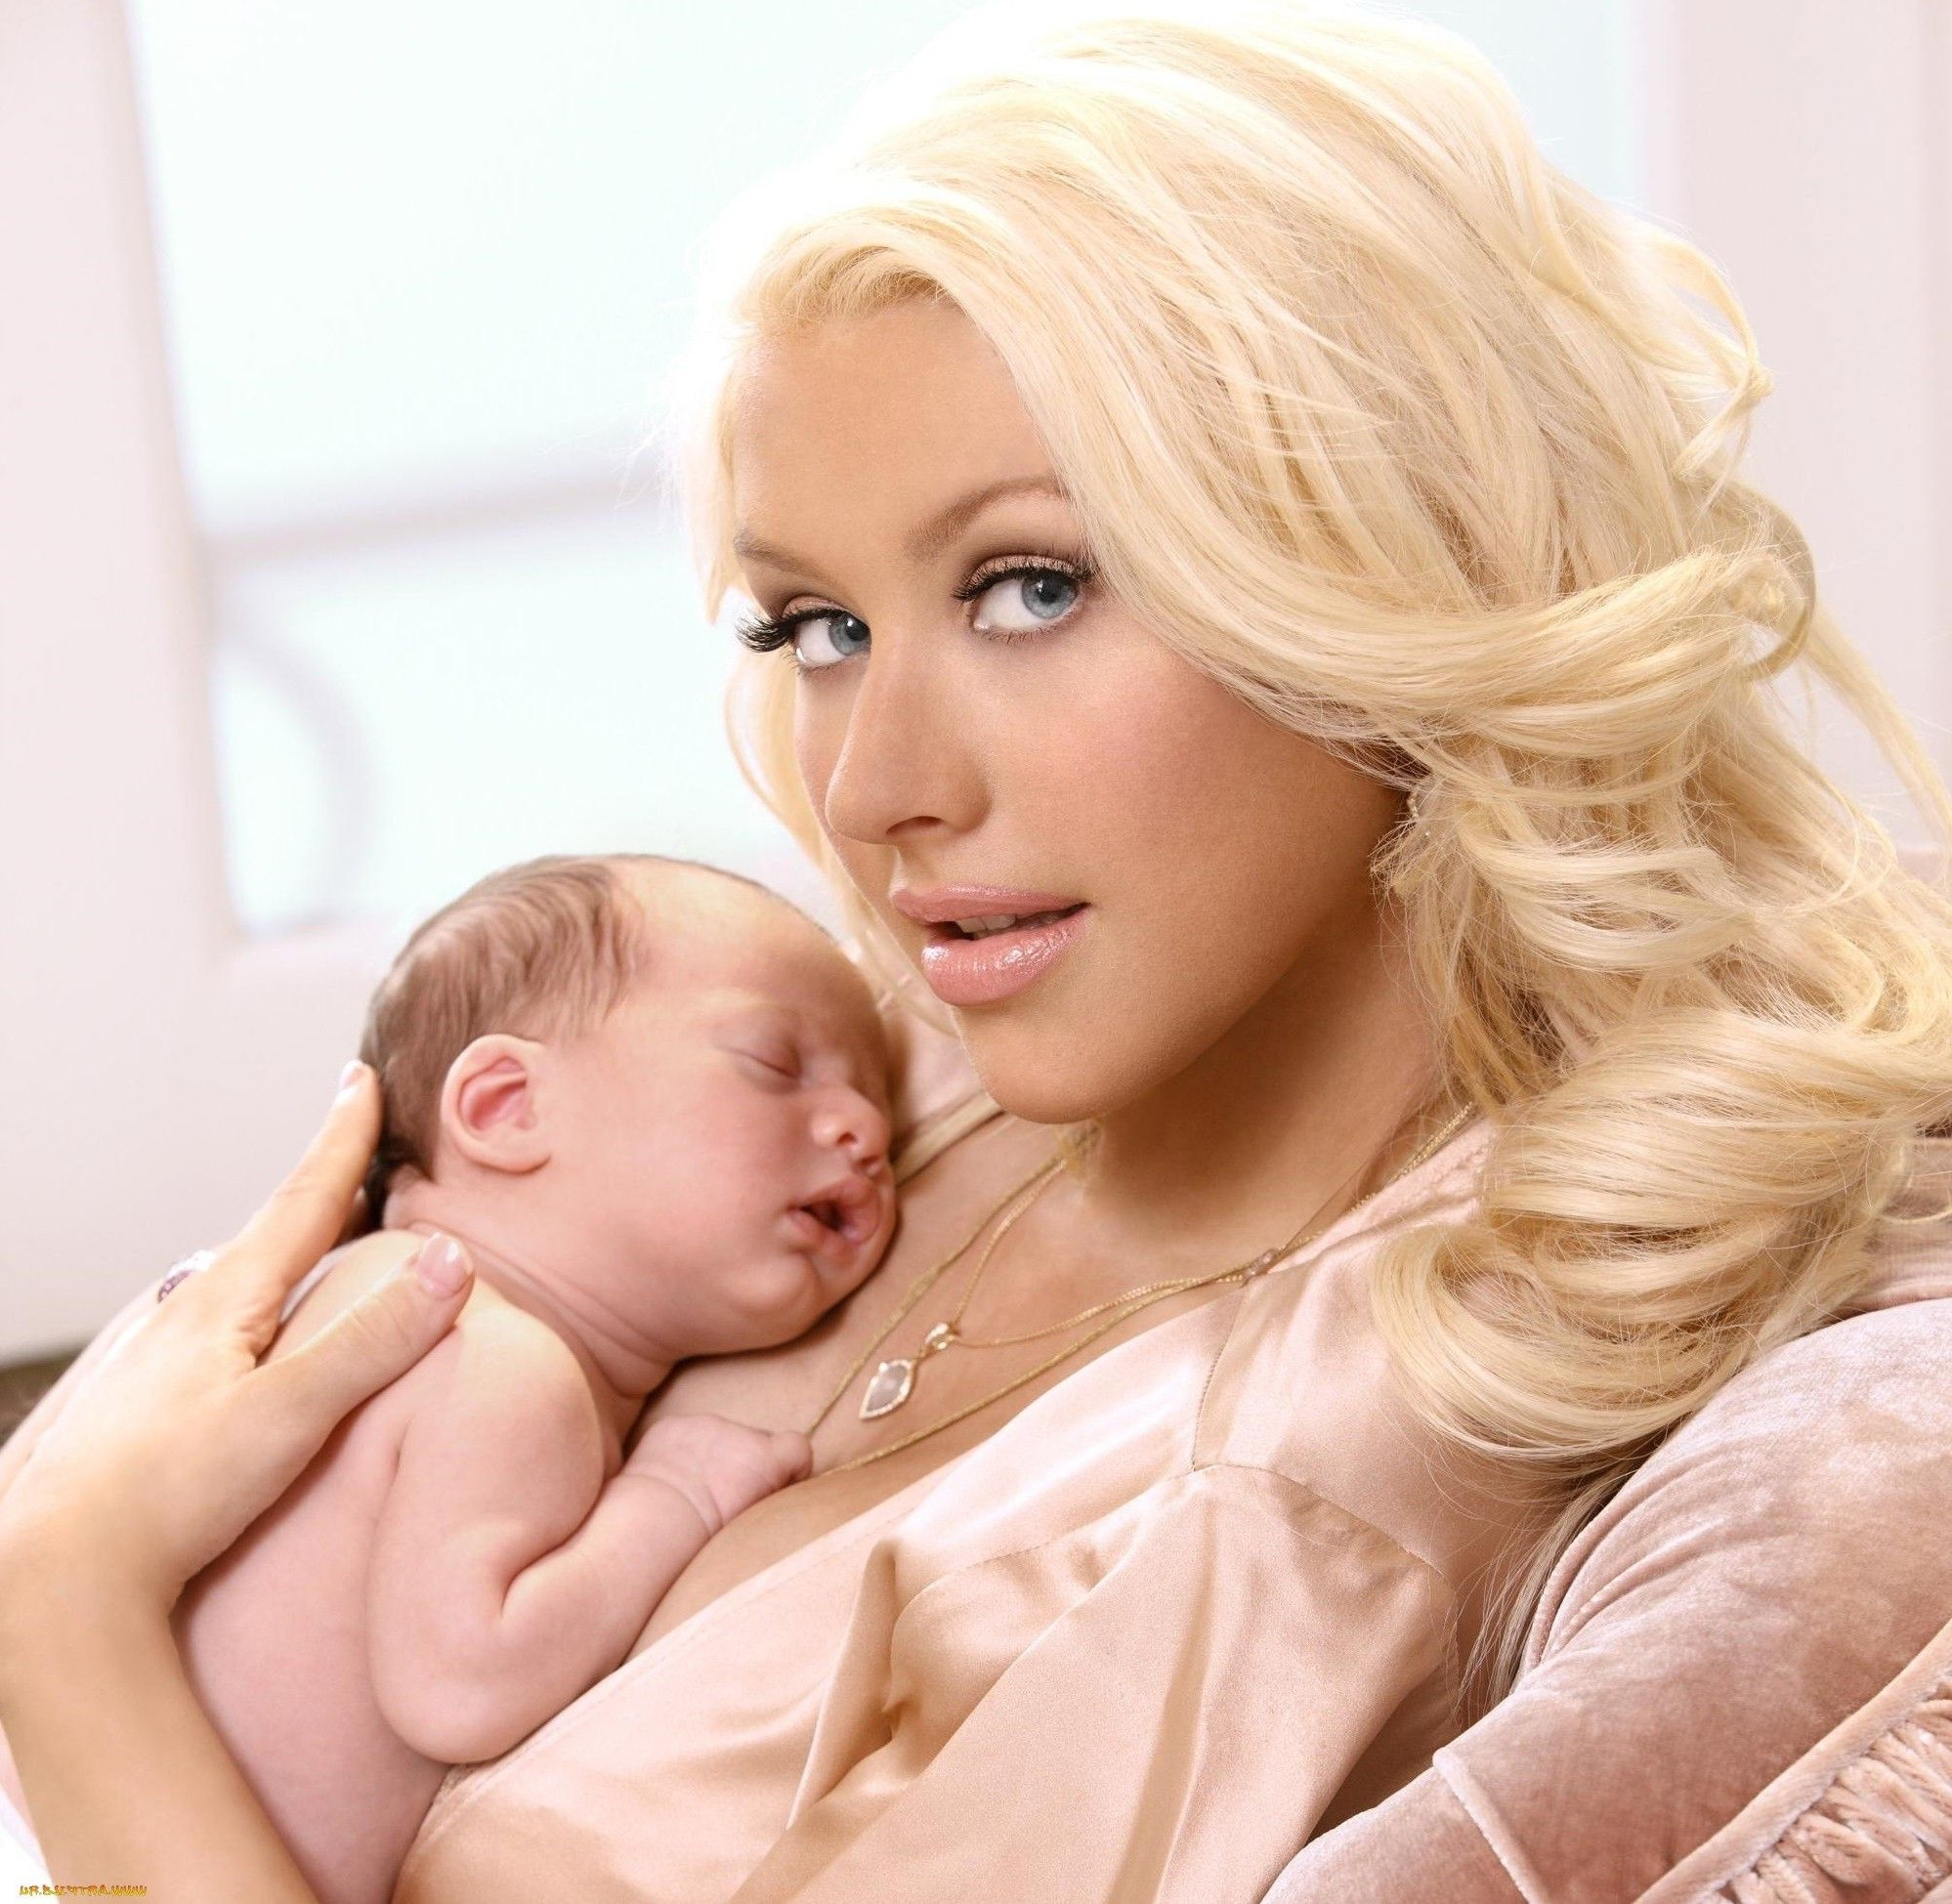 Did Christina Aguilera Get Plastic Surgery? | Christina aguilera ...